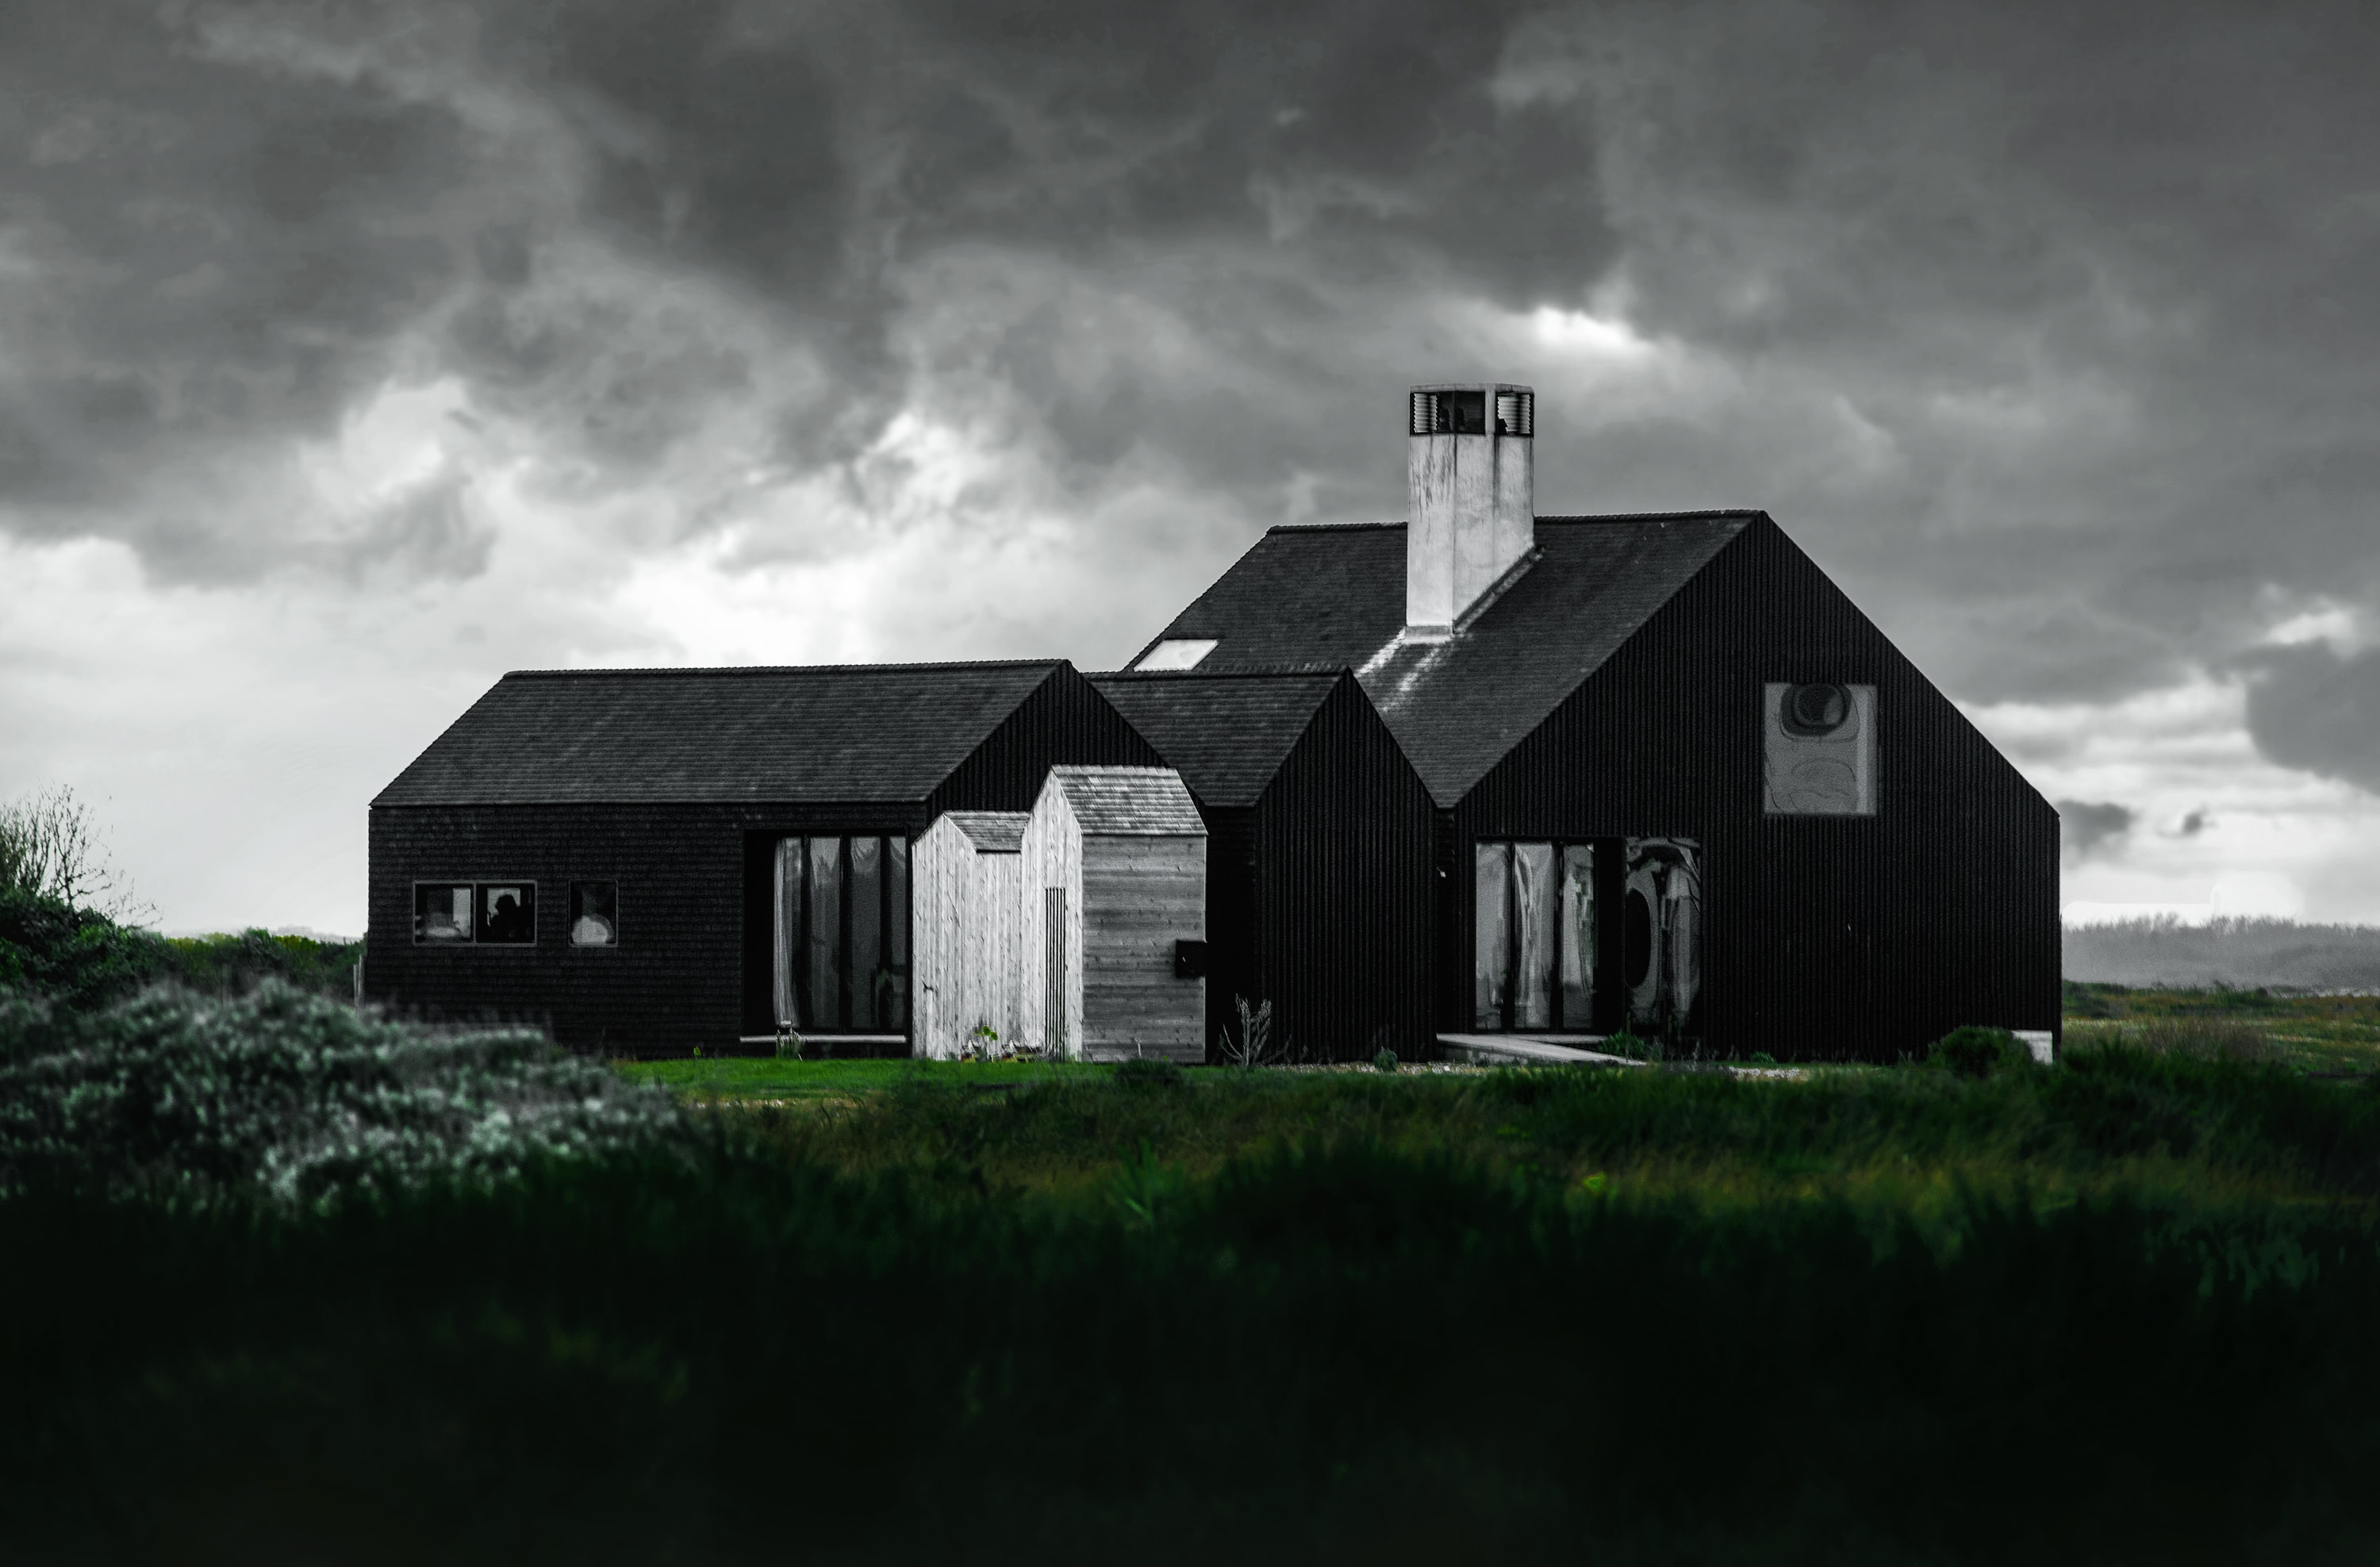 Large cabin-like wooden house with white sheds and chimneys on a grassy hill